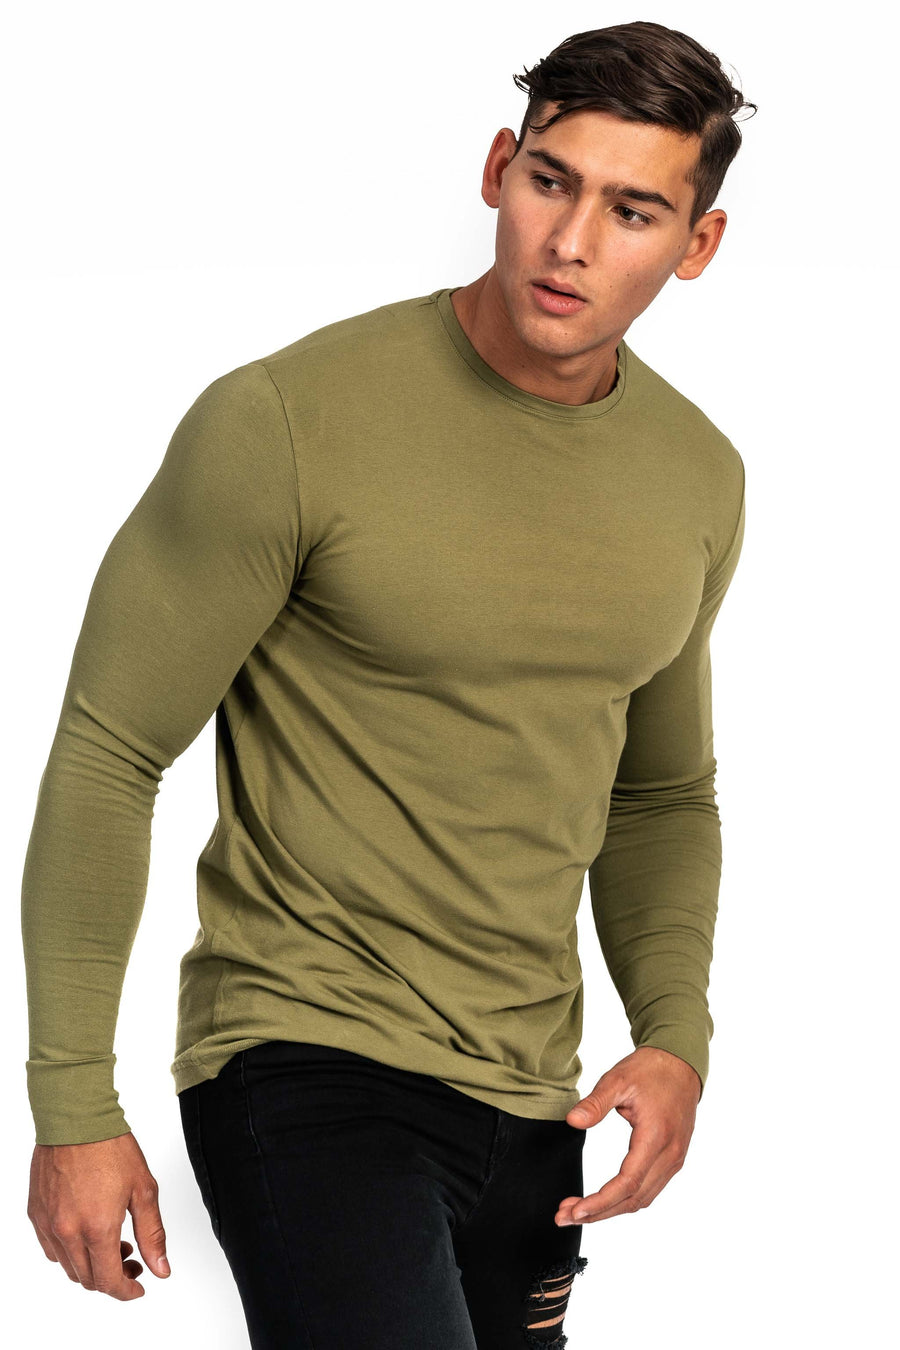 Mens Long Sleeve T-Shirt - Khaki